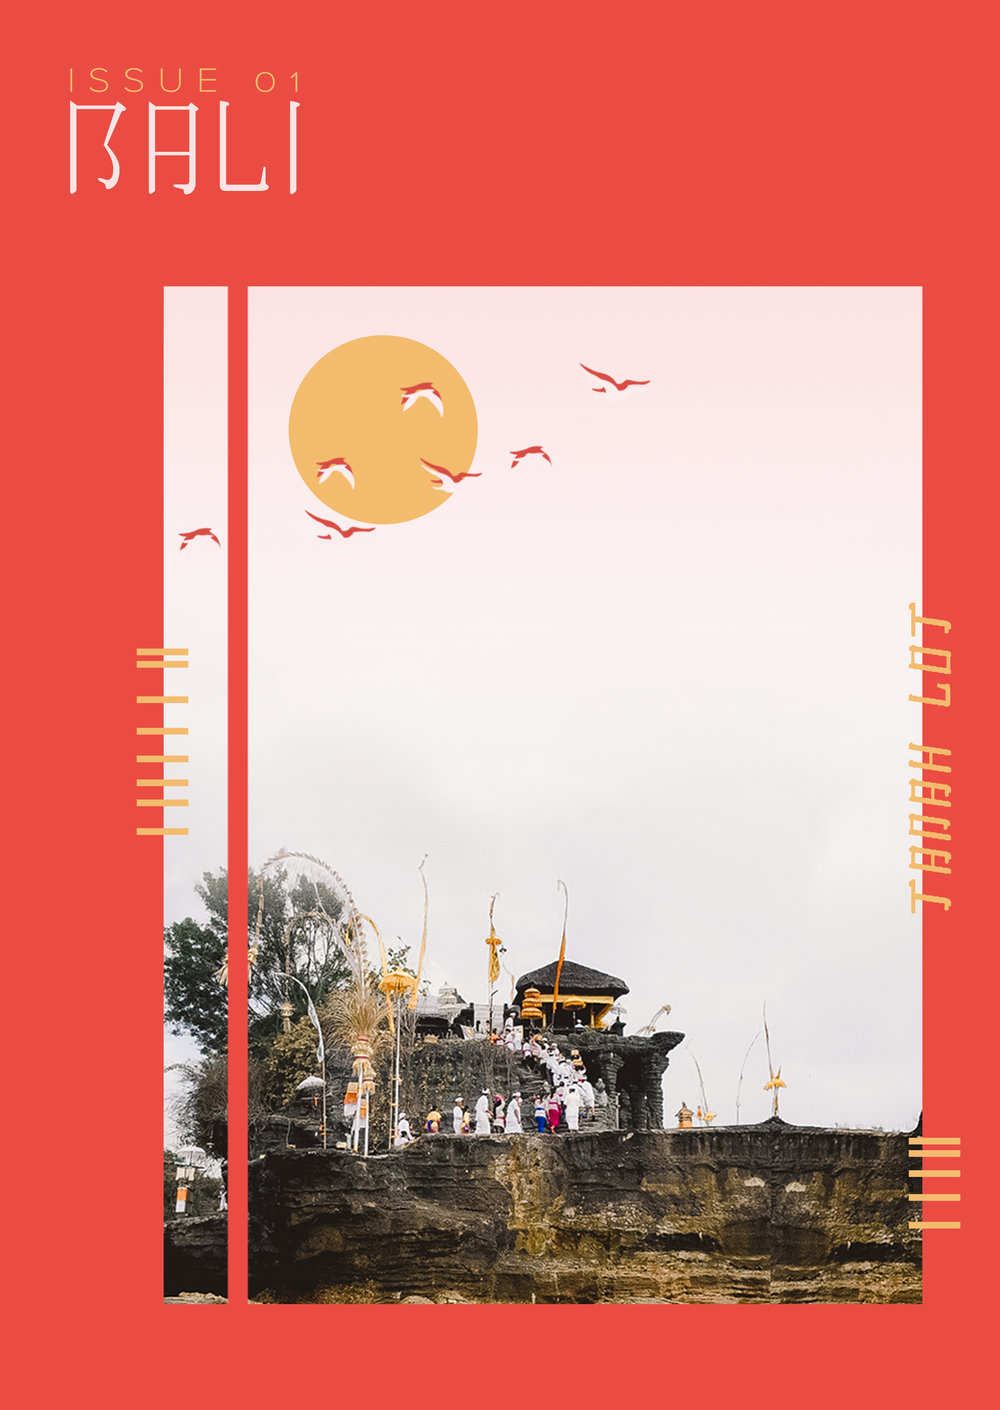 Bali Postcard (Adobe Photoshop 2018)